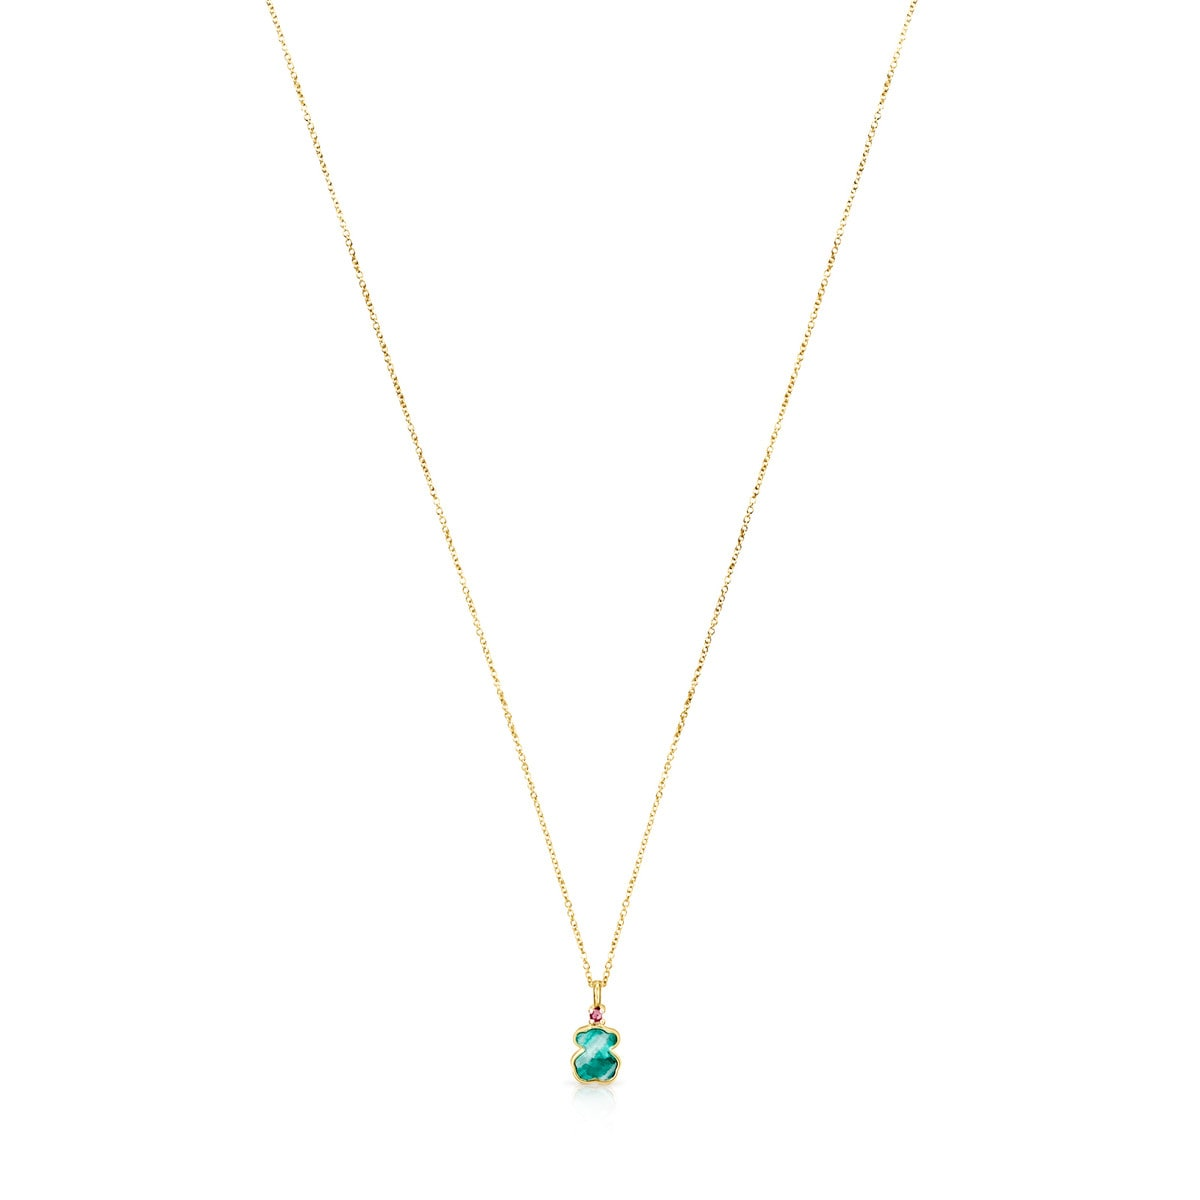 7ec7c1a8c83 Gold TOUS Color Necklace with Amazonite and Ruby - Tous Site US